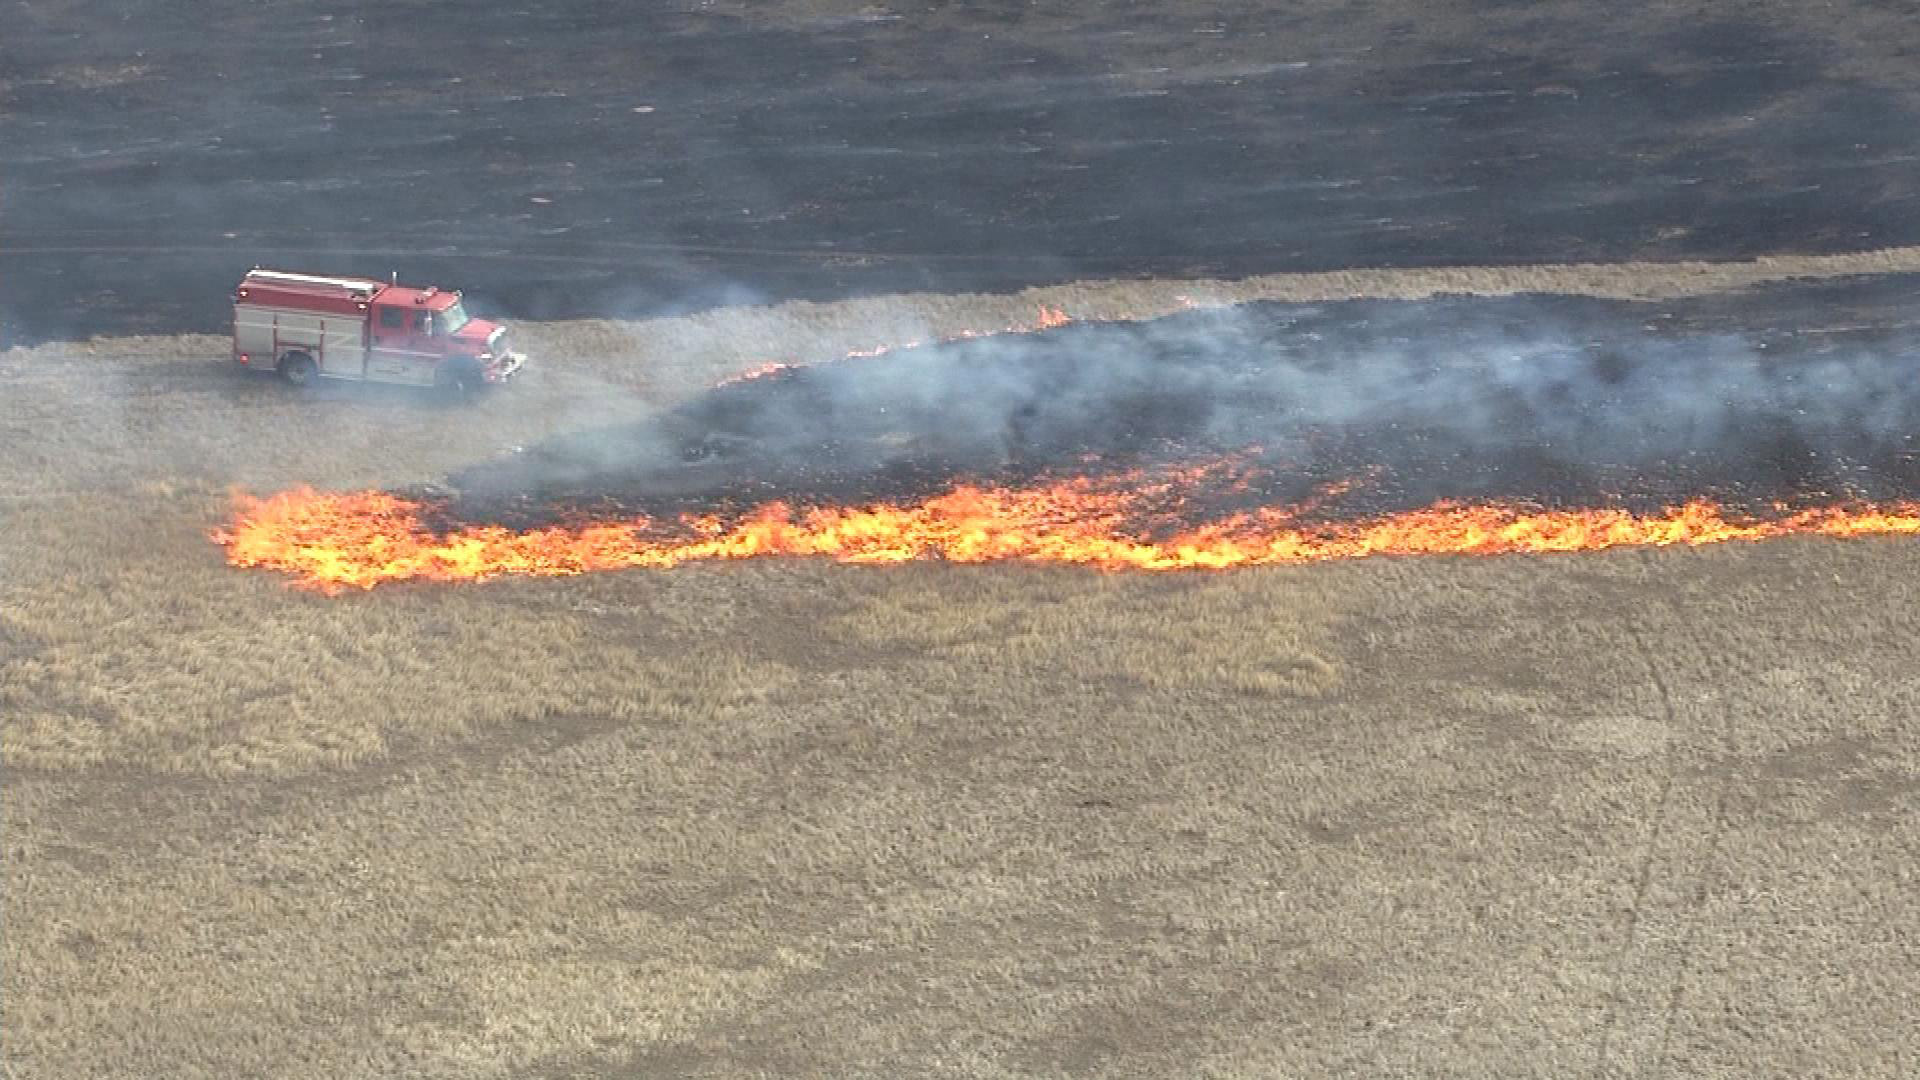 Firefighters battle a grass fire in rural Weld County on Feb. 18. (credit: CBS)